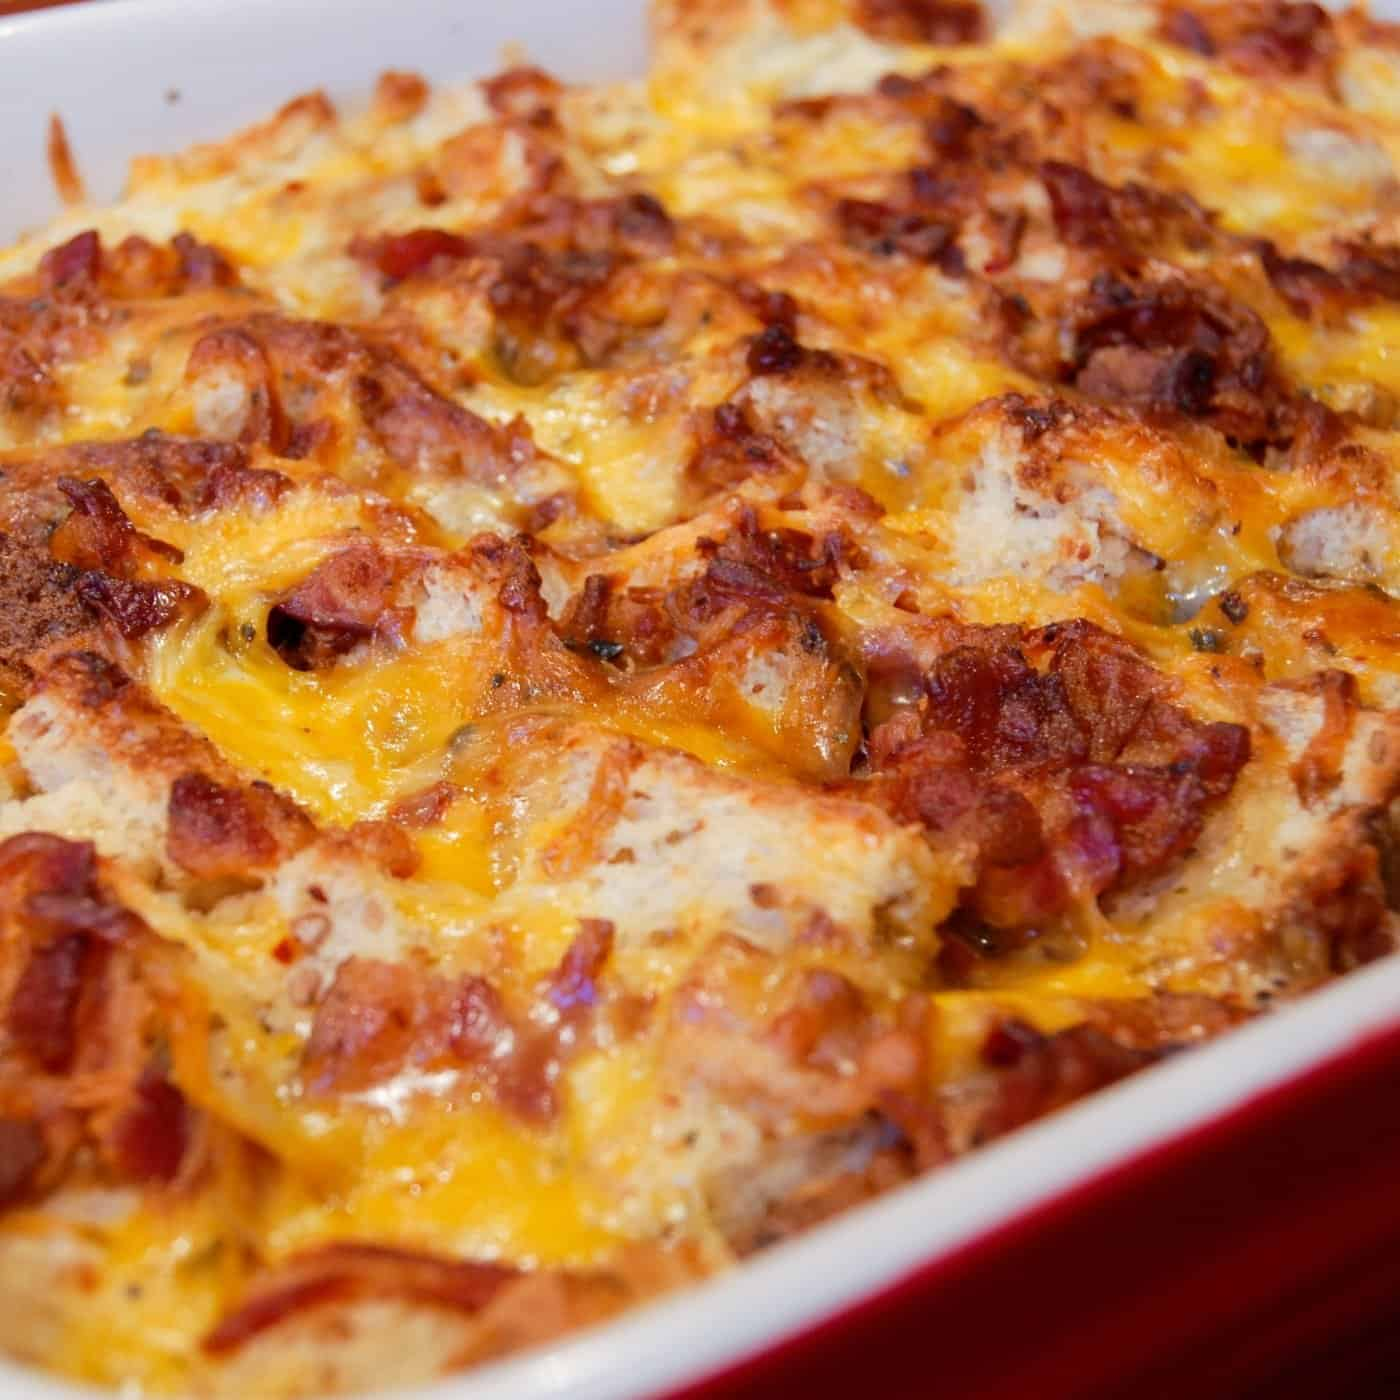 Breakfast casserole with bacon egg and cheese on top